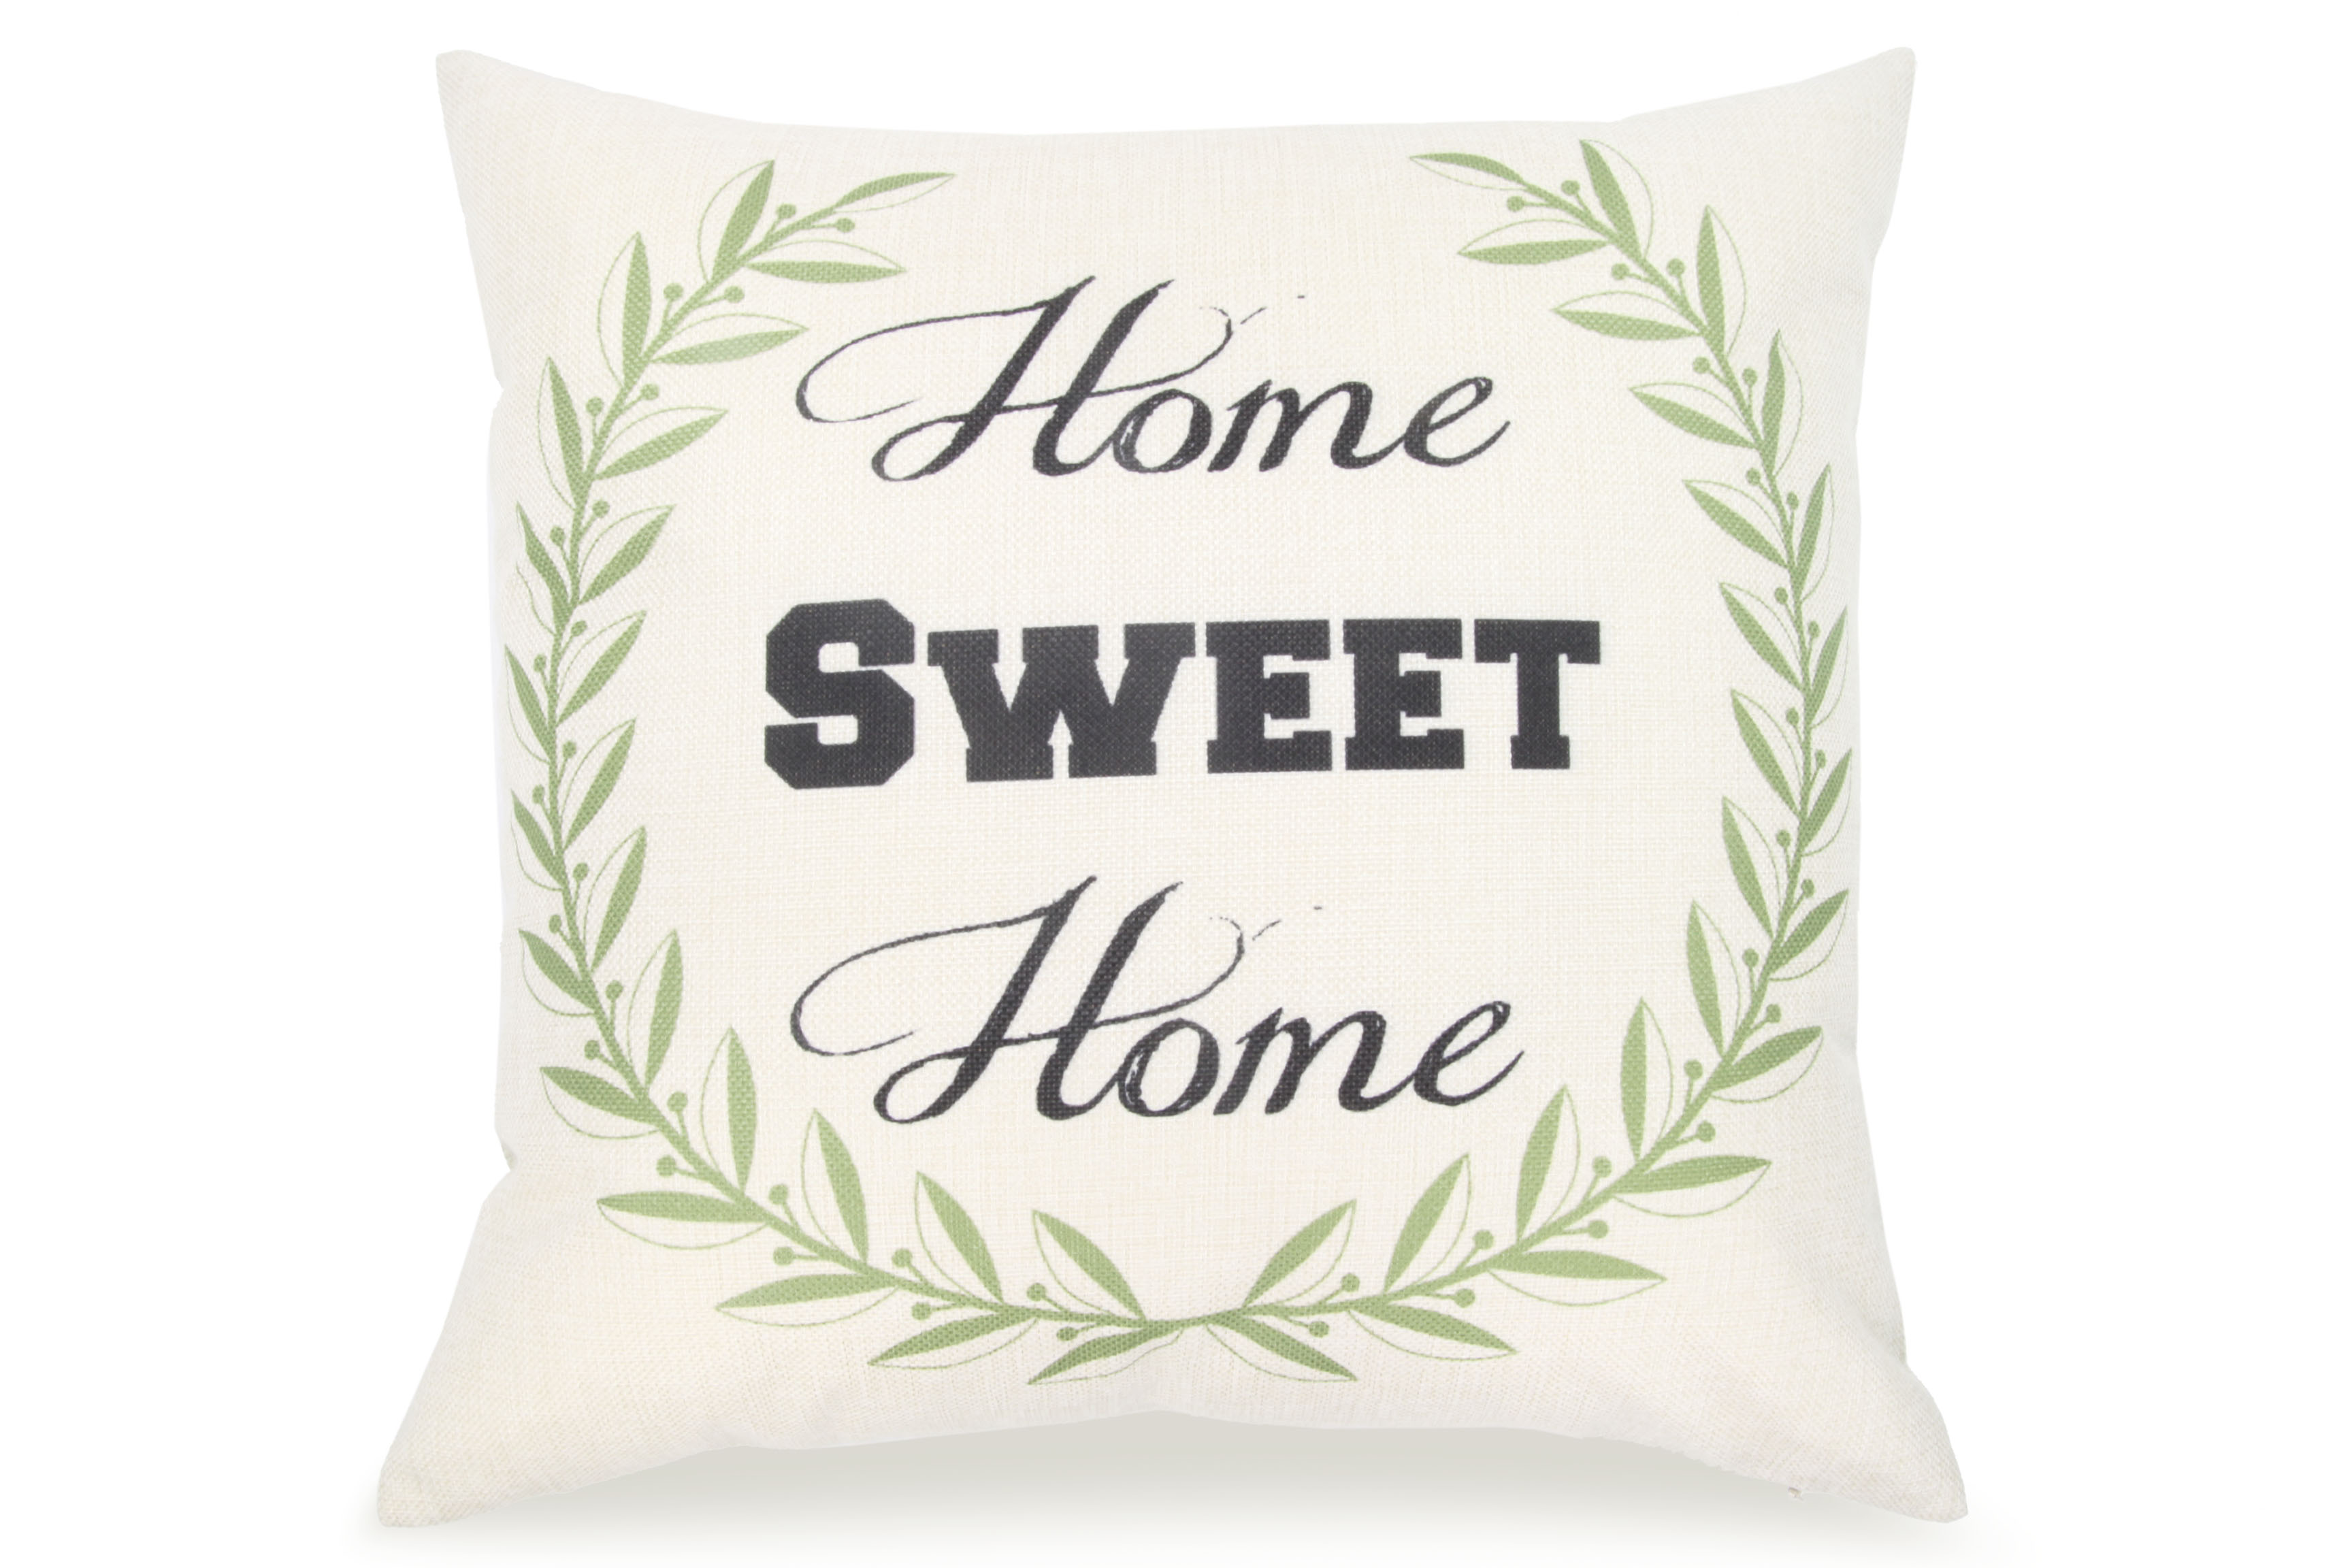 Pal Fabric Blended Linen Square 18x18 Pillow Cover Home Sweet Home Love by Pal Fabric